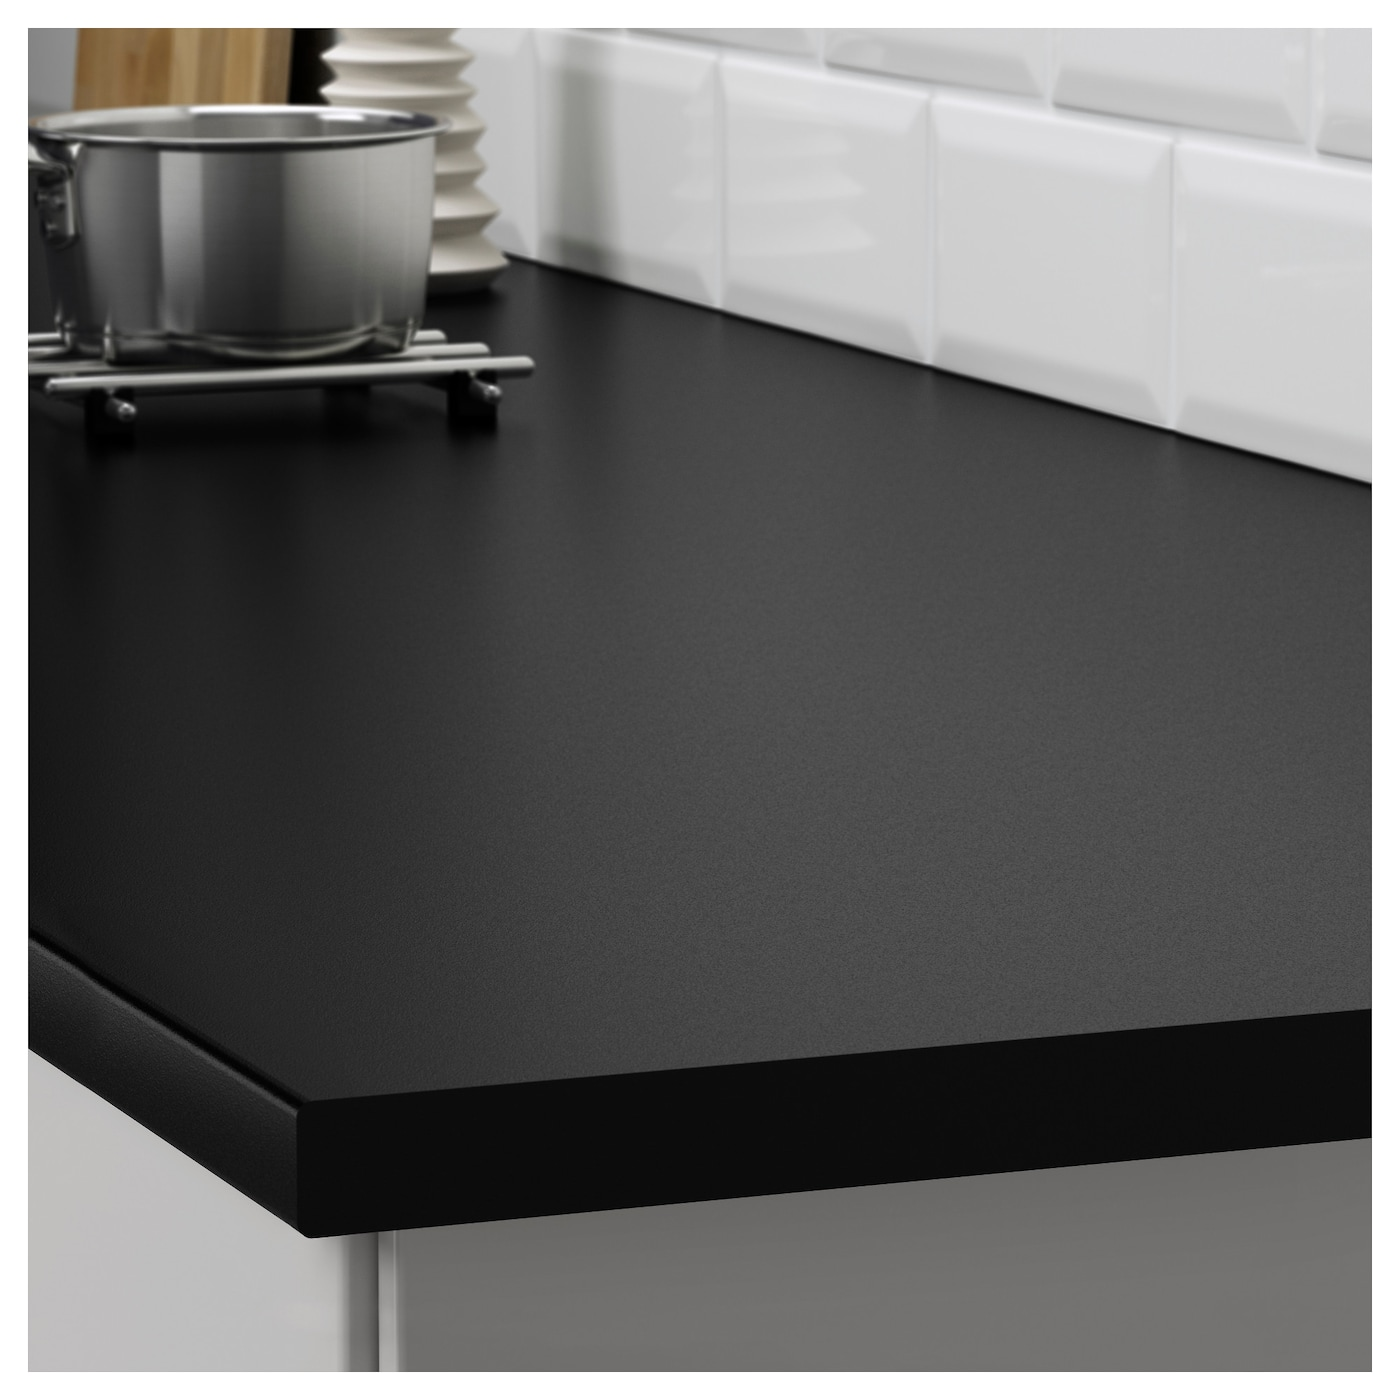 ekbacken plan de travail sur mesure noir stratifi 63 6 125x2 8 cm ikea. Black Bedroom Furniture Sets. Home Design Ideas